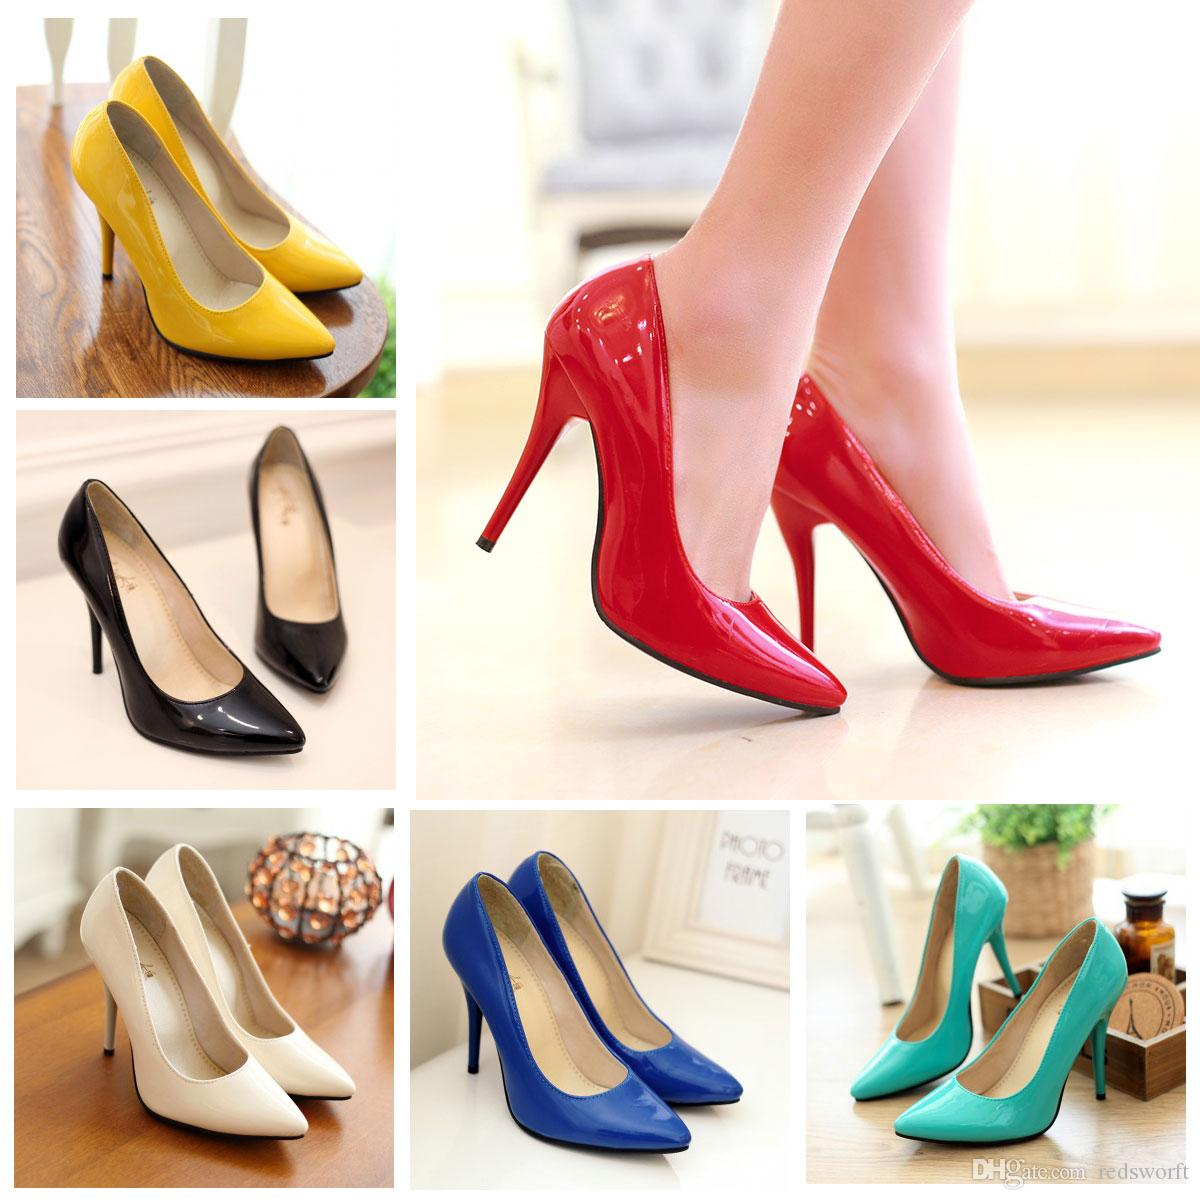 078e85016c57d Wholesale 2019 Women Red Black Patent Leather Poined Toe Women Pumps 105mm Fashion  High Heels Shoes For Women Wedding Shoes Office Dress High Heel Shoes ...